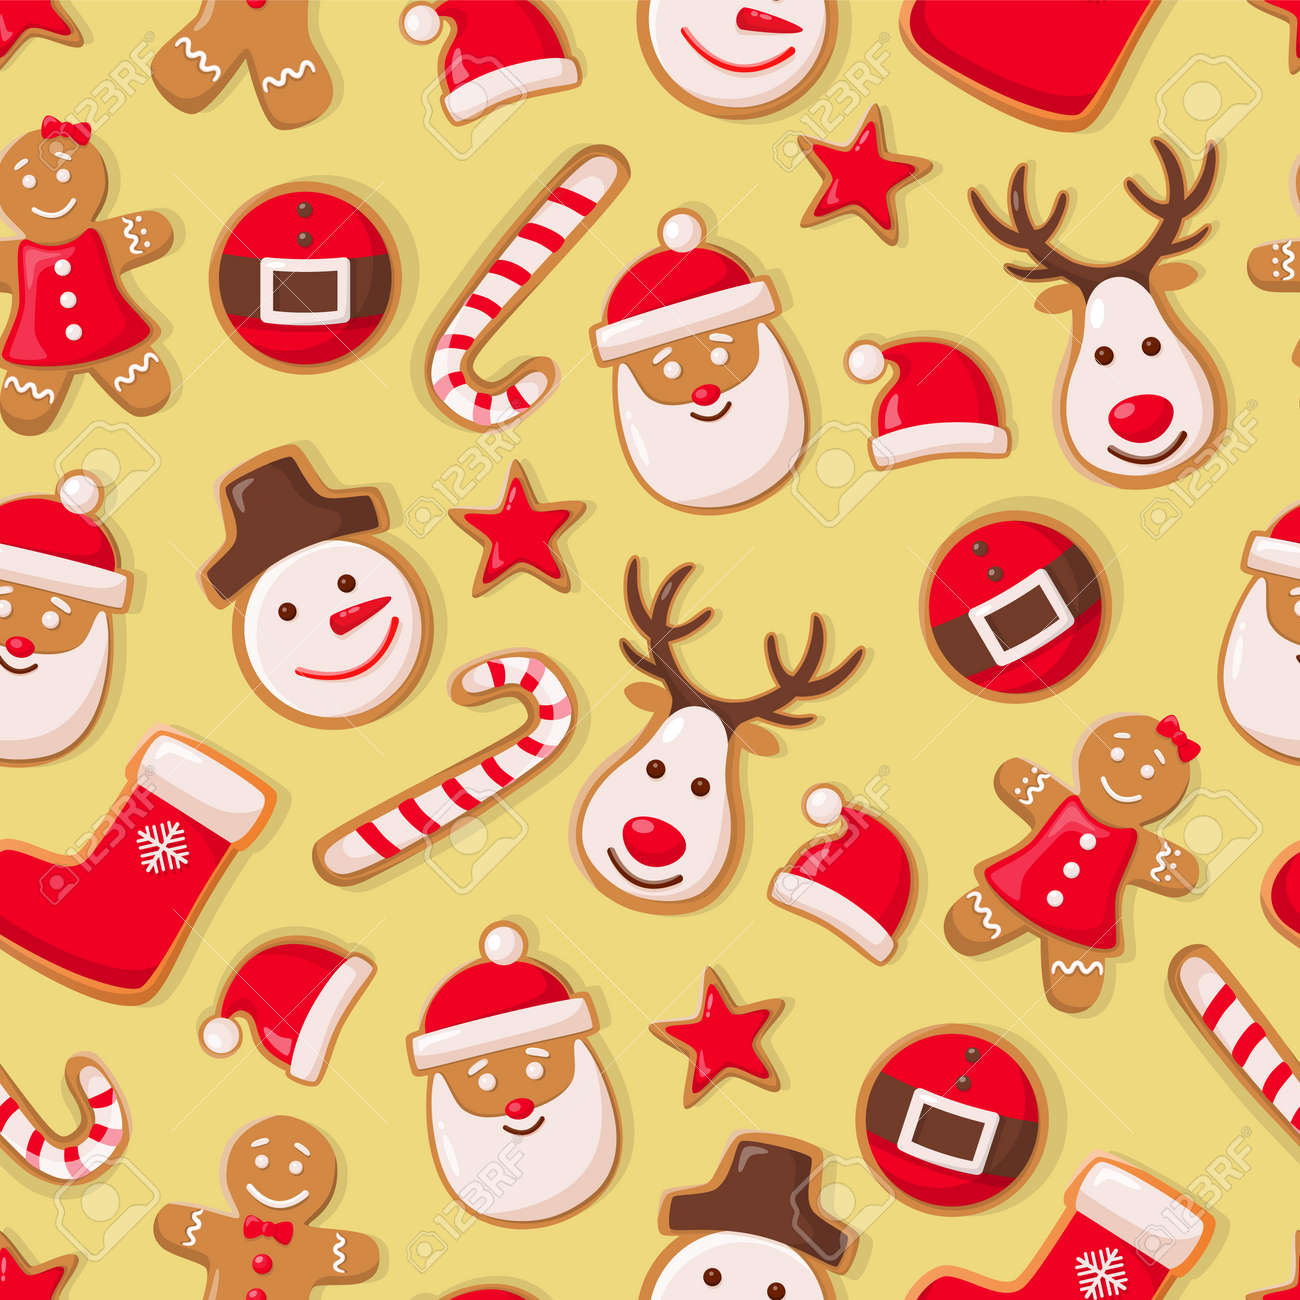 Gingerbread man cookies and Santa Claus candy seamless pattern vector. Christmas symbols winter holiday celebration, sock and hat, star and reindeer - 116762445